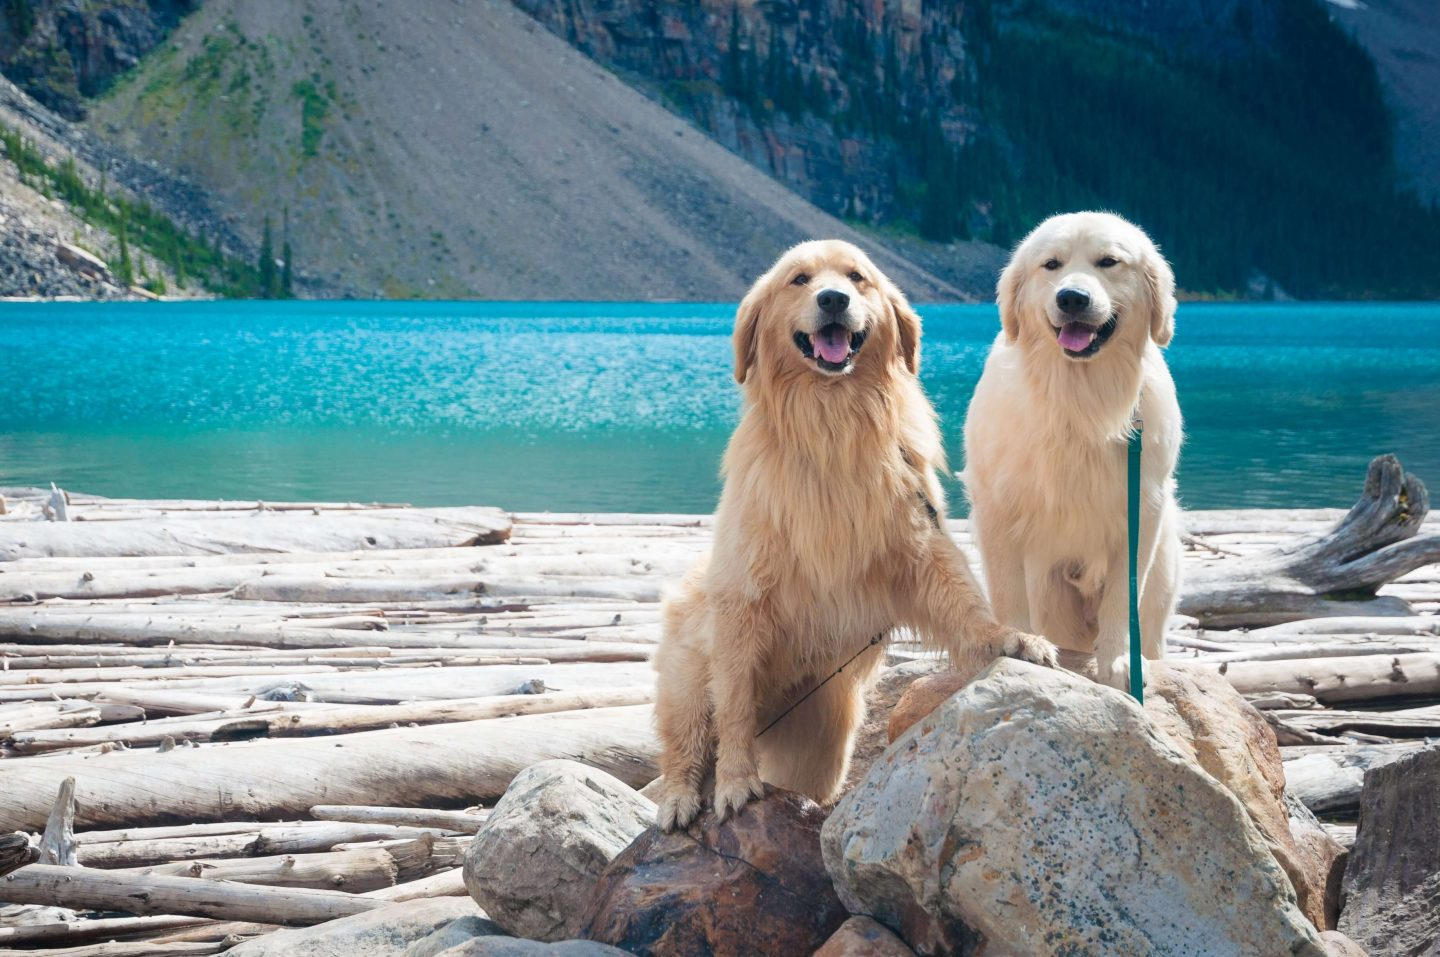 Dog knowledge quiz - Dogs at a lake